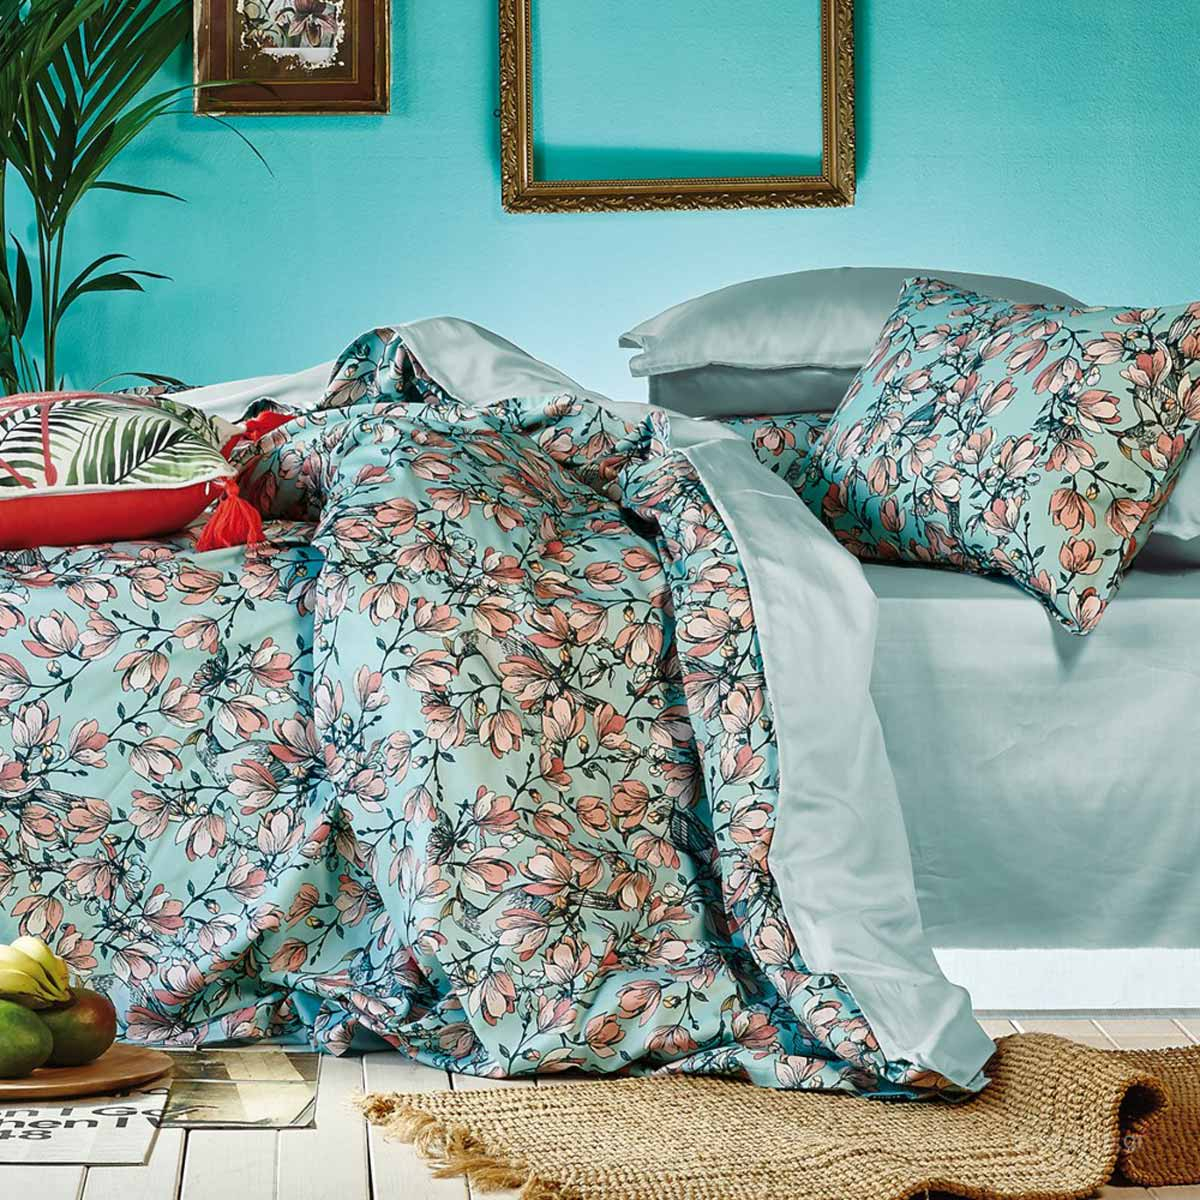 Σεντόνια King Size (Σετ) Kentia Stylish Eridanos 10